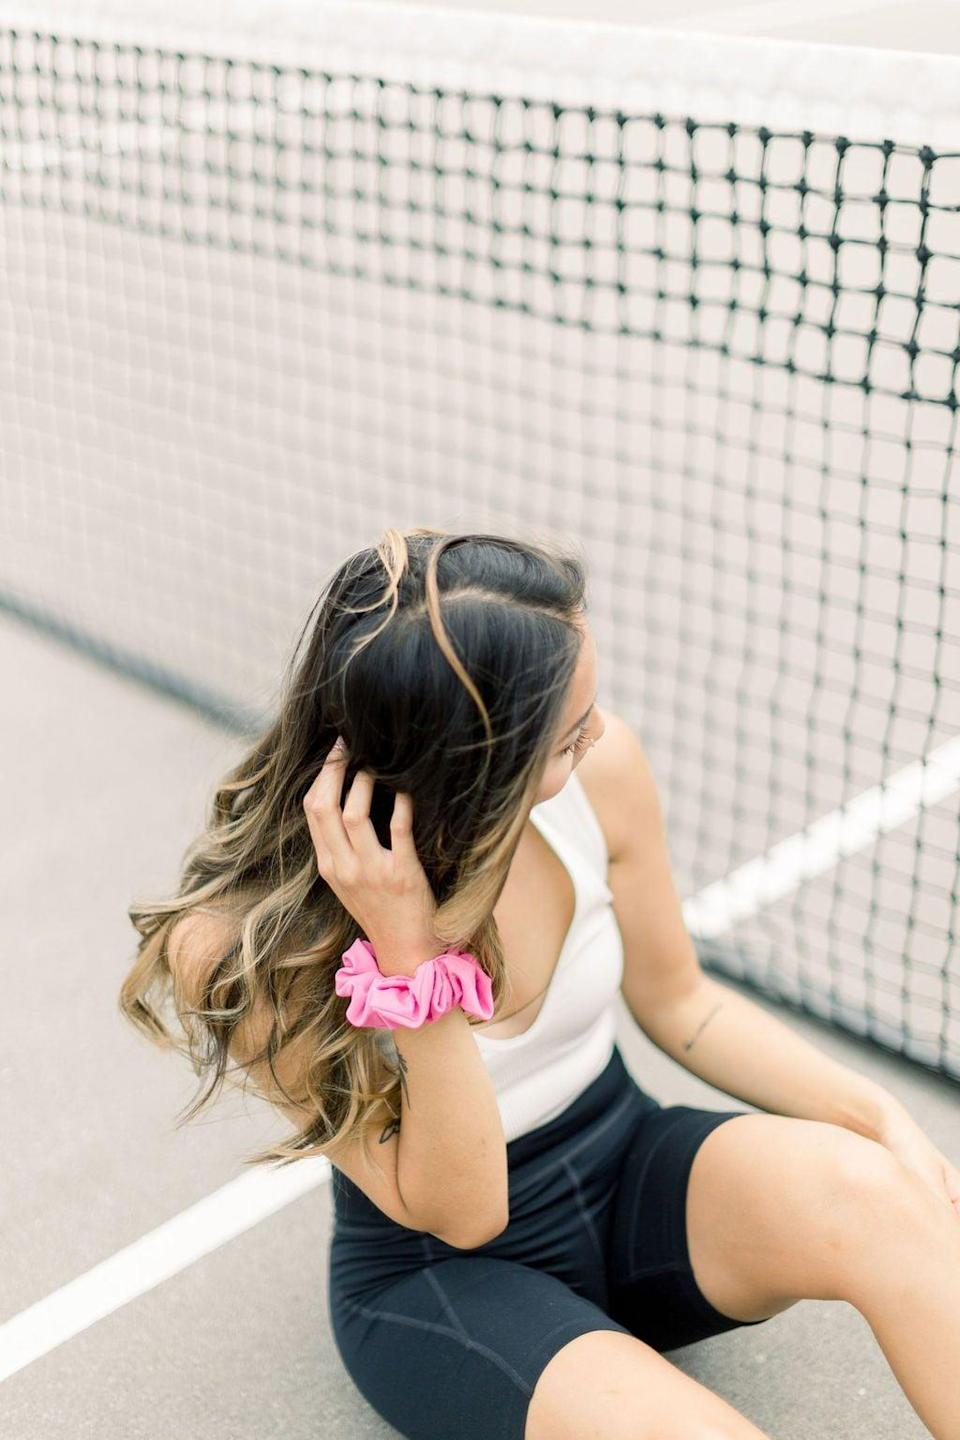 """<p>""""I'm not a big scrunchie girl, but I gave the <a href=""""https://www.popsugar.com/buy/Active-Swim-Scrunchie-578917?p_name=Active%20%2B%20Swim%20Scrunchie&retailer=chelseaking.shop&pid=578917&price=18&evar1=fit%3Auk&evar9=47513257&evar98=https%3A%2F%2Fwww.popsugar.com%2Ffitness%2Fphoto-gallery%2F47513257%2Fimage%2F47518335%2FActive-Swim-Scrunchie&list1=healthy%20living&prop13=api&pdata=1"""" class=""""link rapid-noclick-resp"""" rel=""""nofollow noopener"""" target=""""_blank"""" data-ylk=""""slk:Active + Swim Scrunchie"""">Active + Swim Scrunchie</a> ($18) from Chelsea + King and was pleasantly surprised. My hair gets heavy when it gets long (thanks, quarantine!) and regular hair ties aren't usually strong enough to hold it all up, which results in sagging ponytails that pull on my scalp. These scrunchies are secure enough to keep a bun in place during yoga and low-impact workouts, and they're moisture-wicking to keep sweat away. I'm loving the bright colors, too!"""" - MR</p>"""